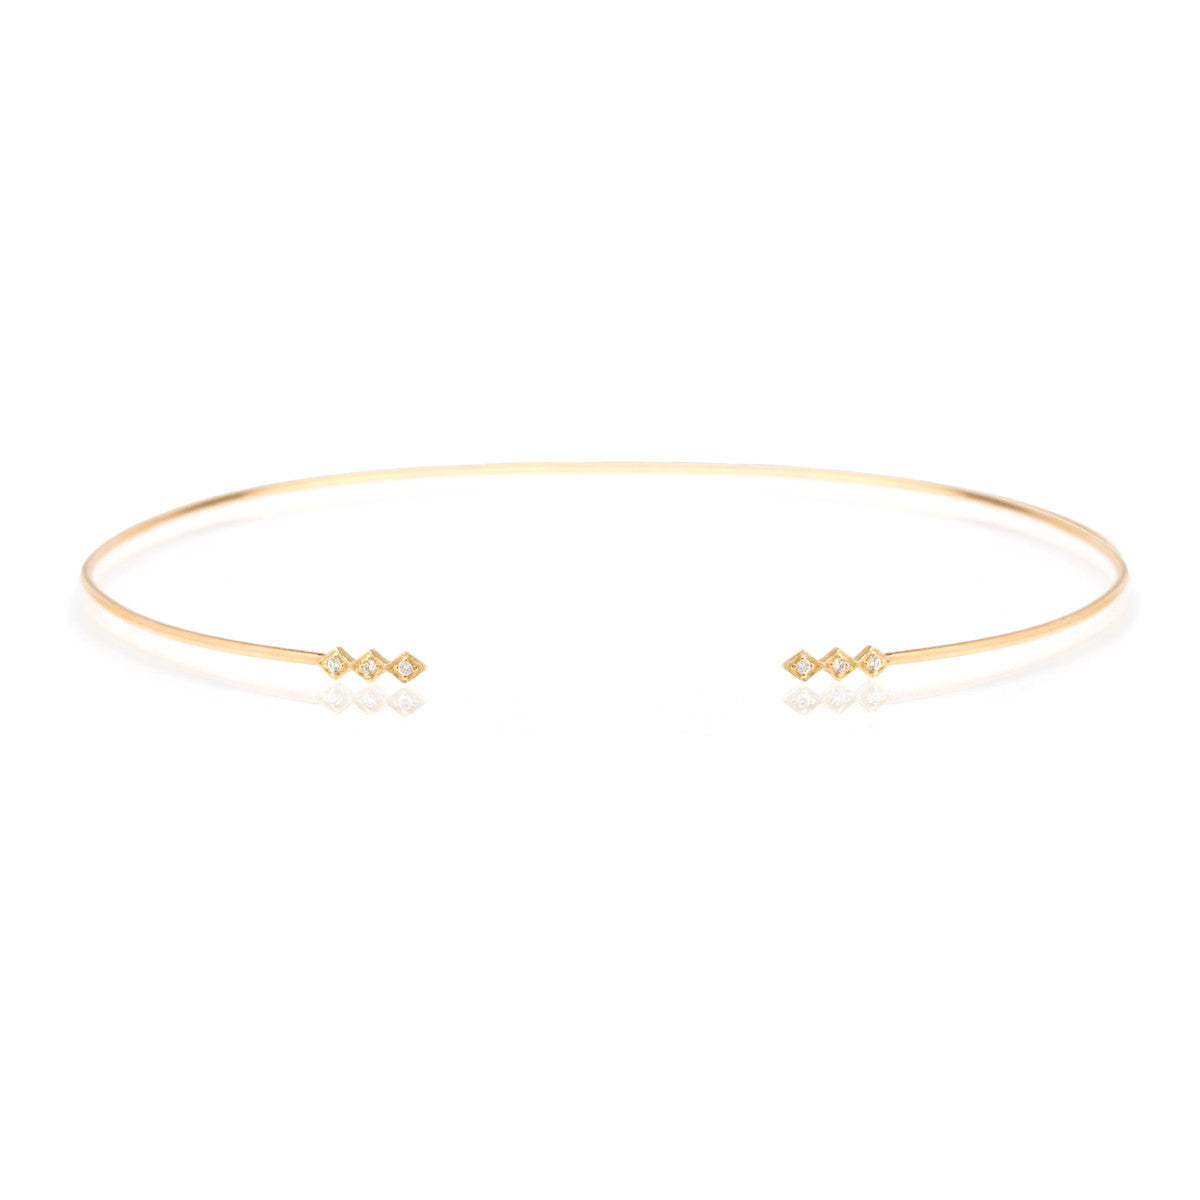 or knot nunu sterling bangles friendship original ends twisted pearl related rose jewellery products cube open gold silver bangle